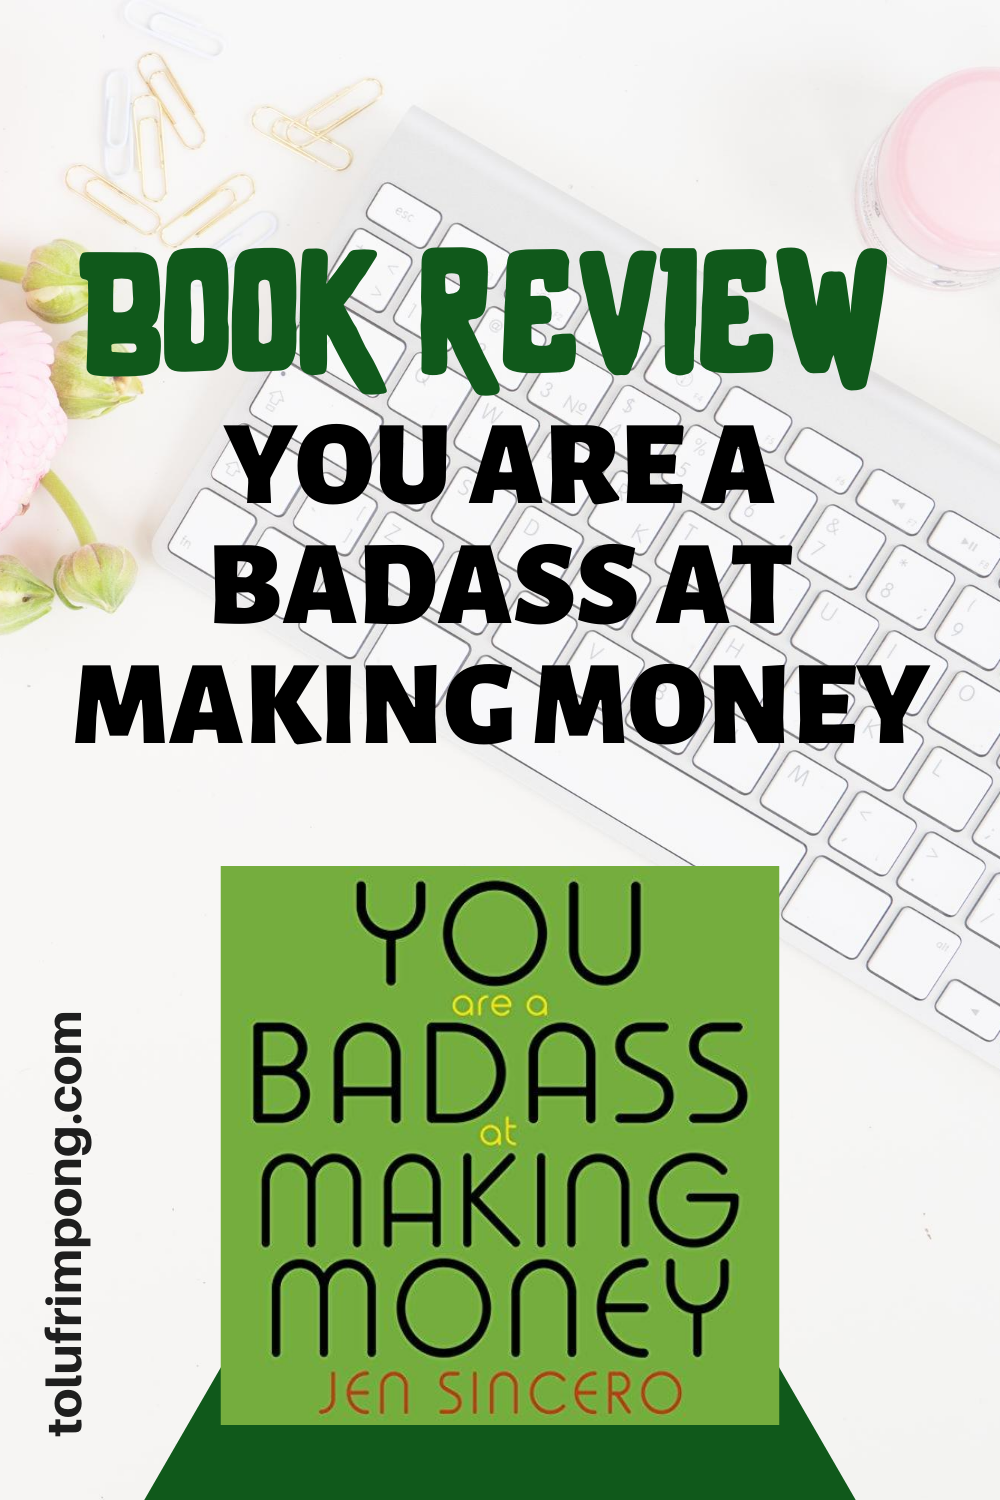 BOOK REVIEW YOU ARE A BADASS AT MAKING MONEY